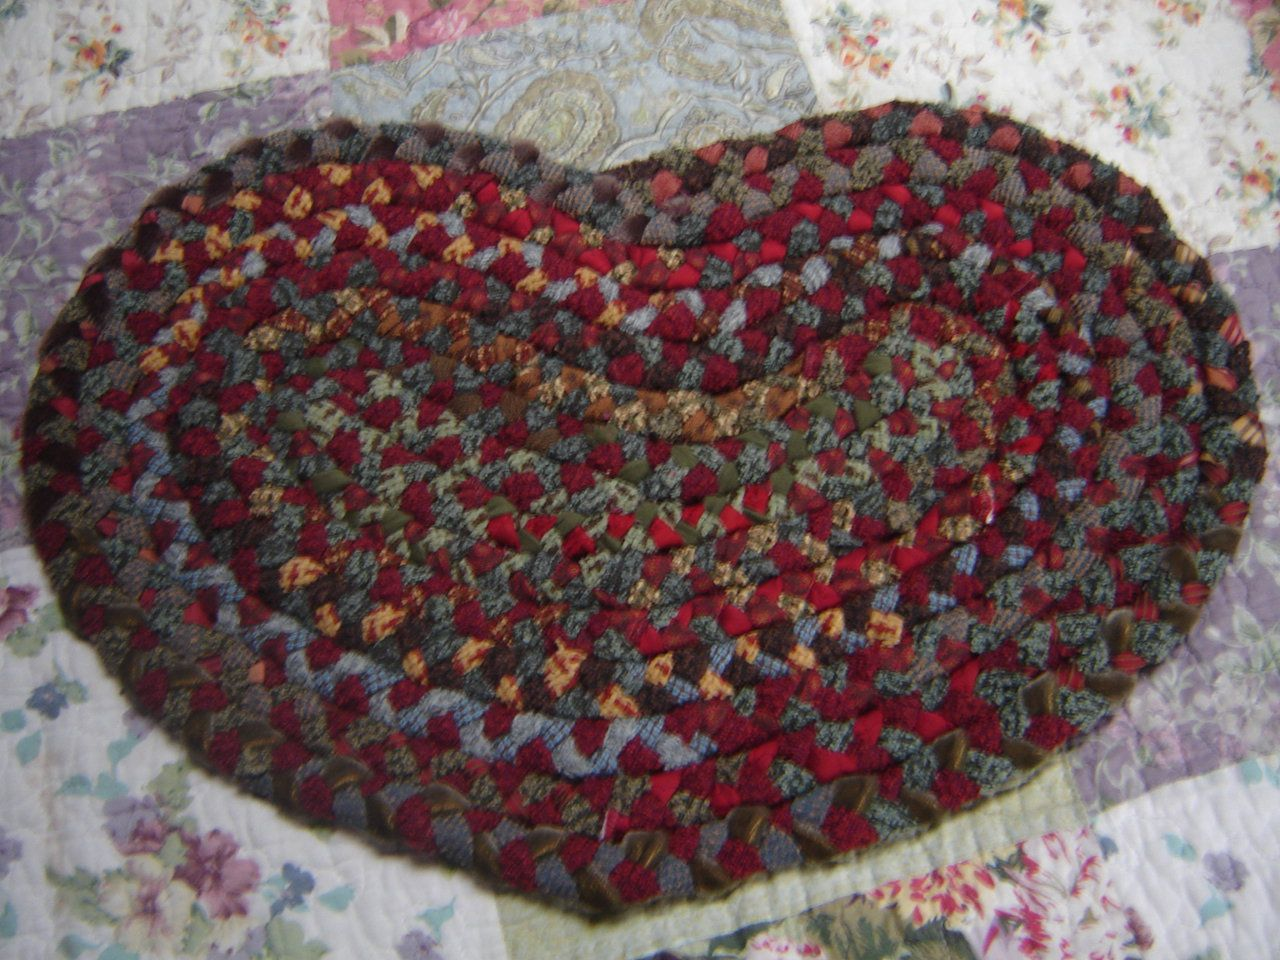 Heart Shaped Braided Rug